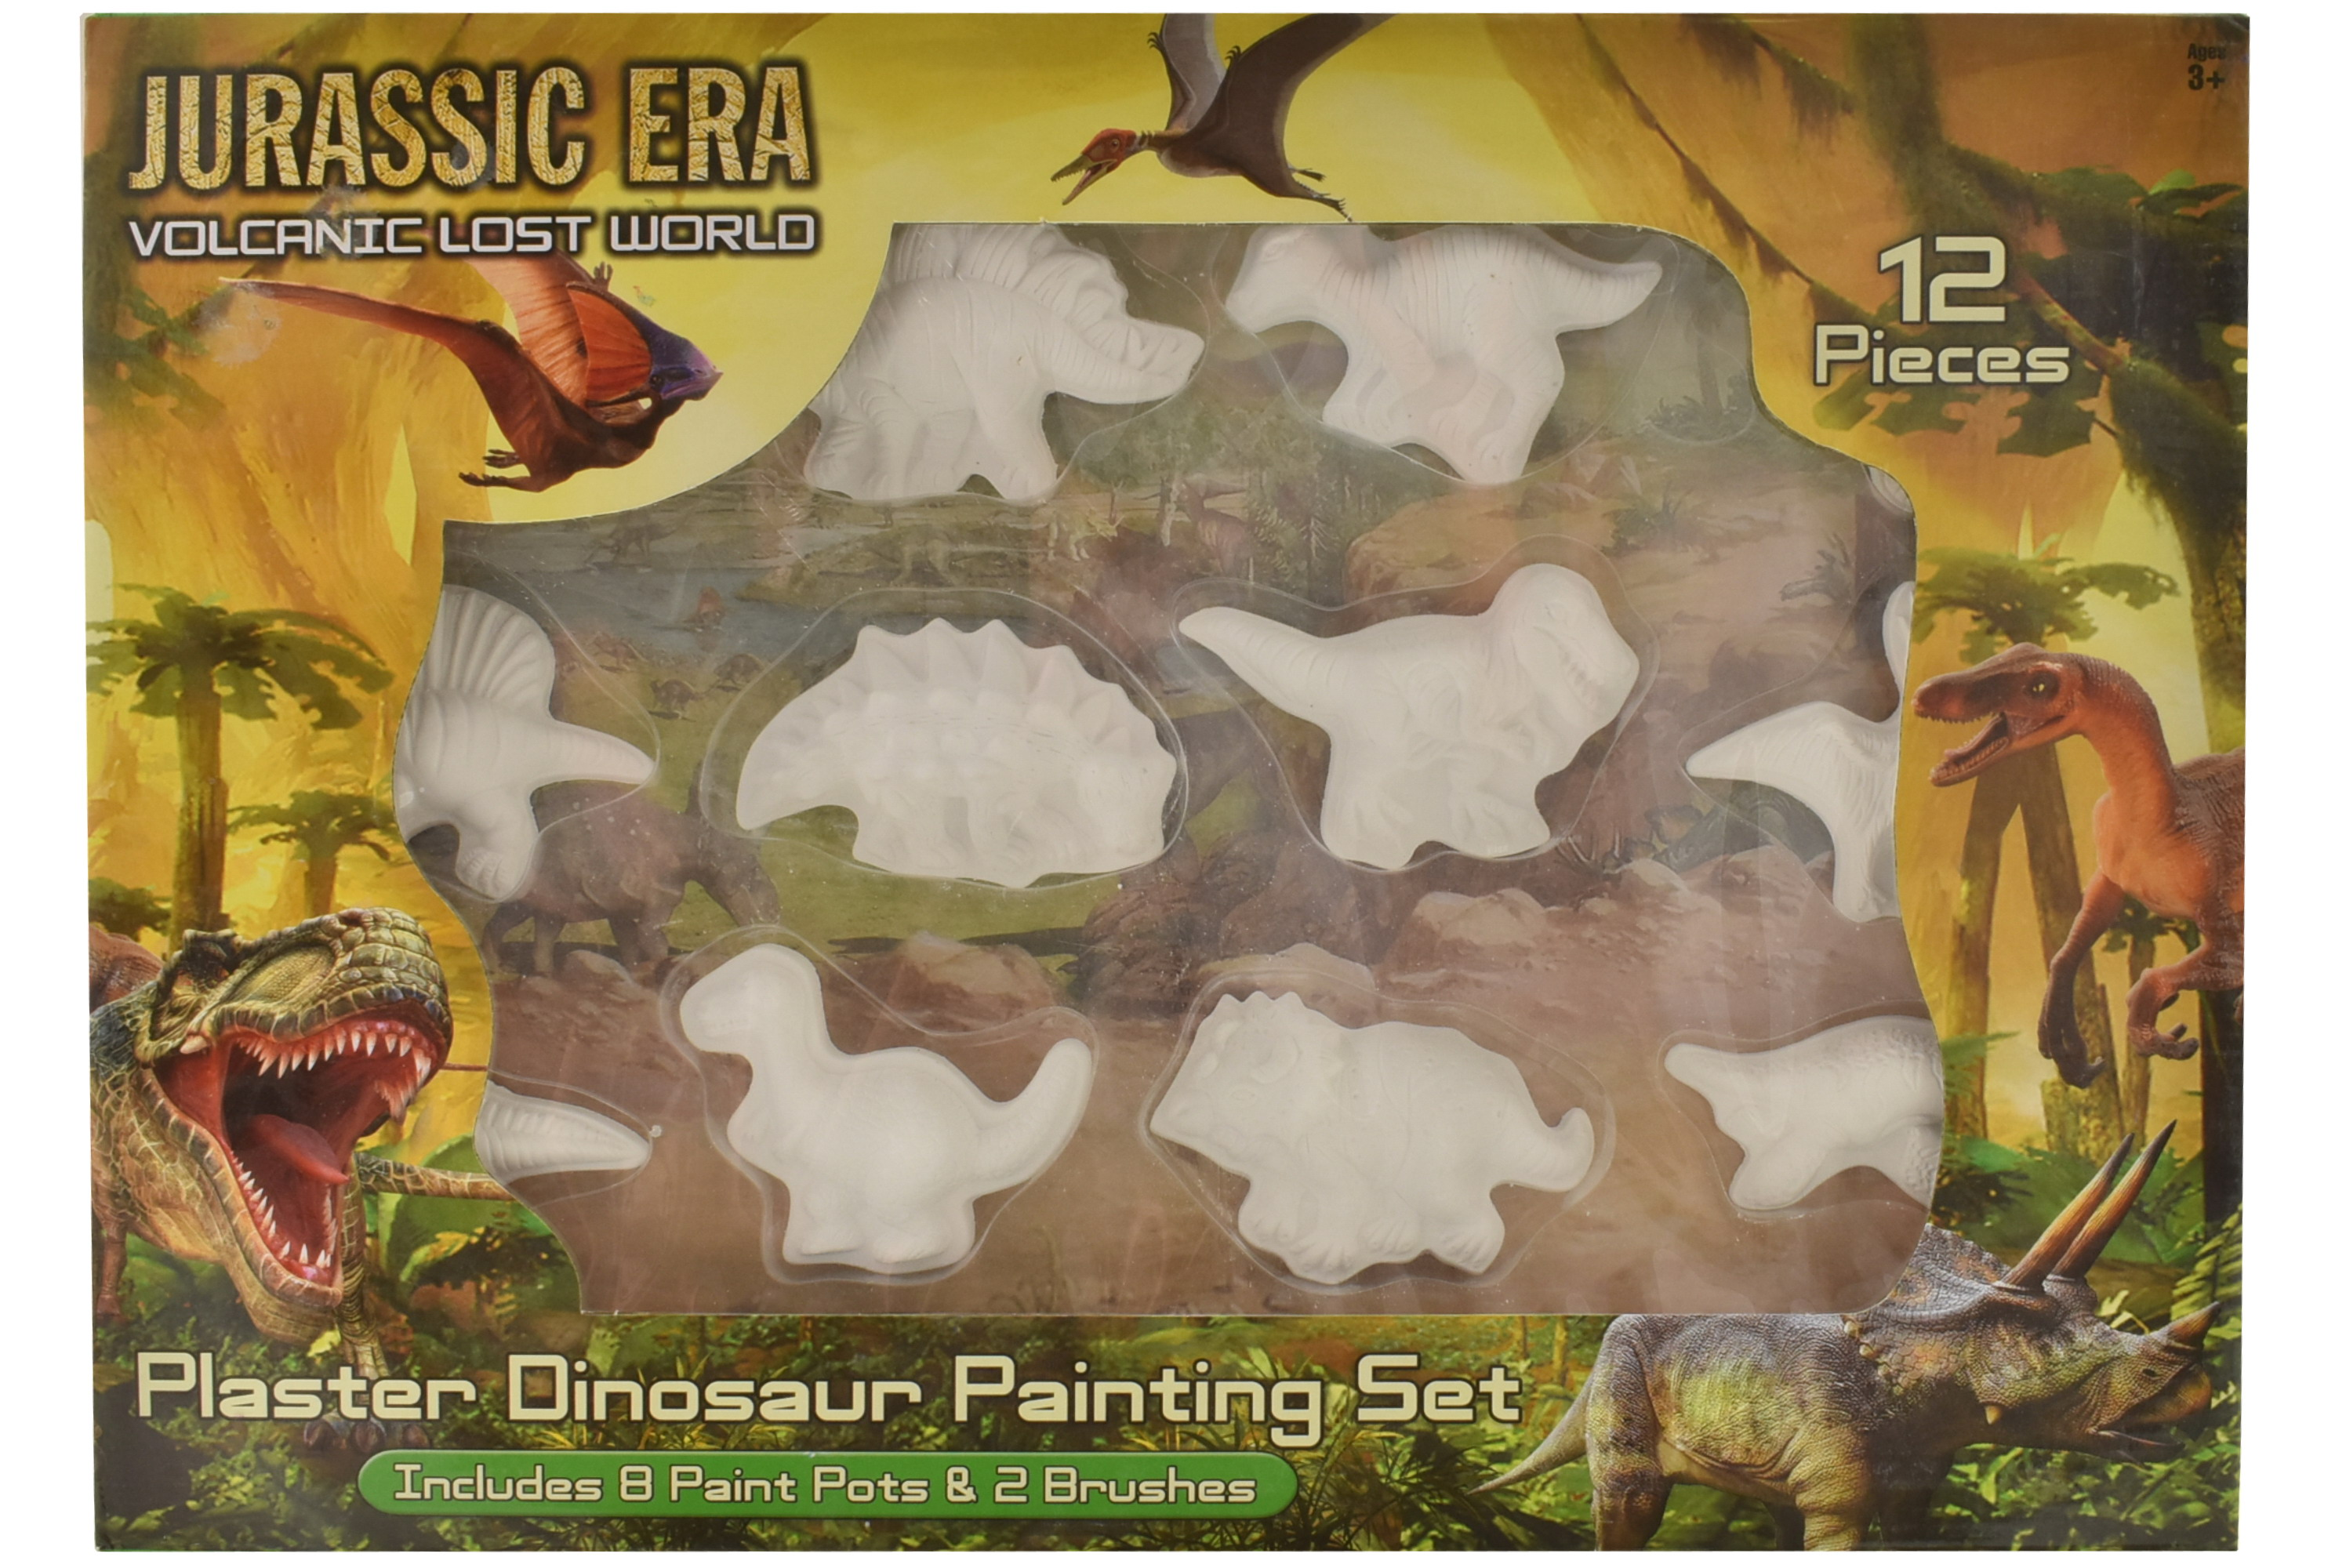 12pc Dinosaur Plaster Painting Set In Window Box